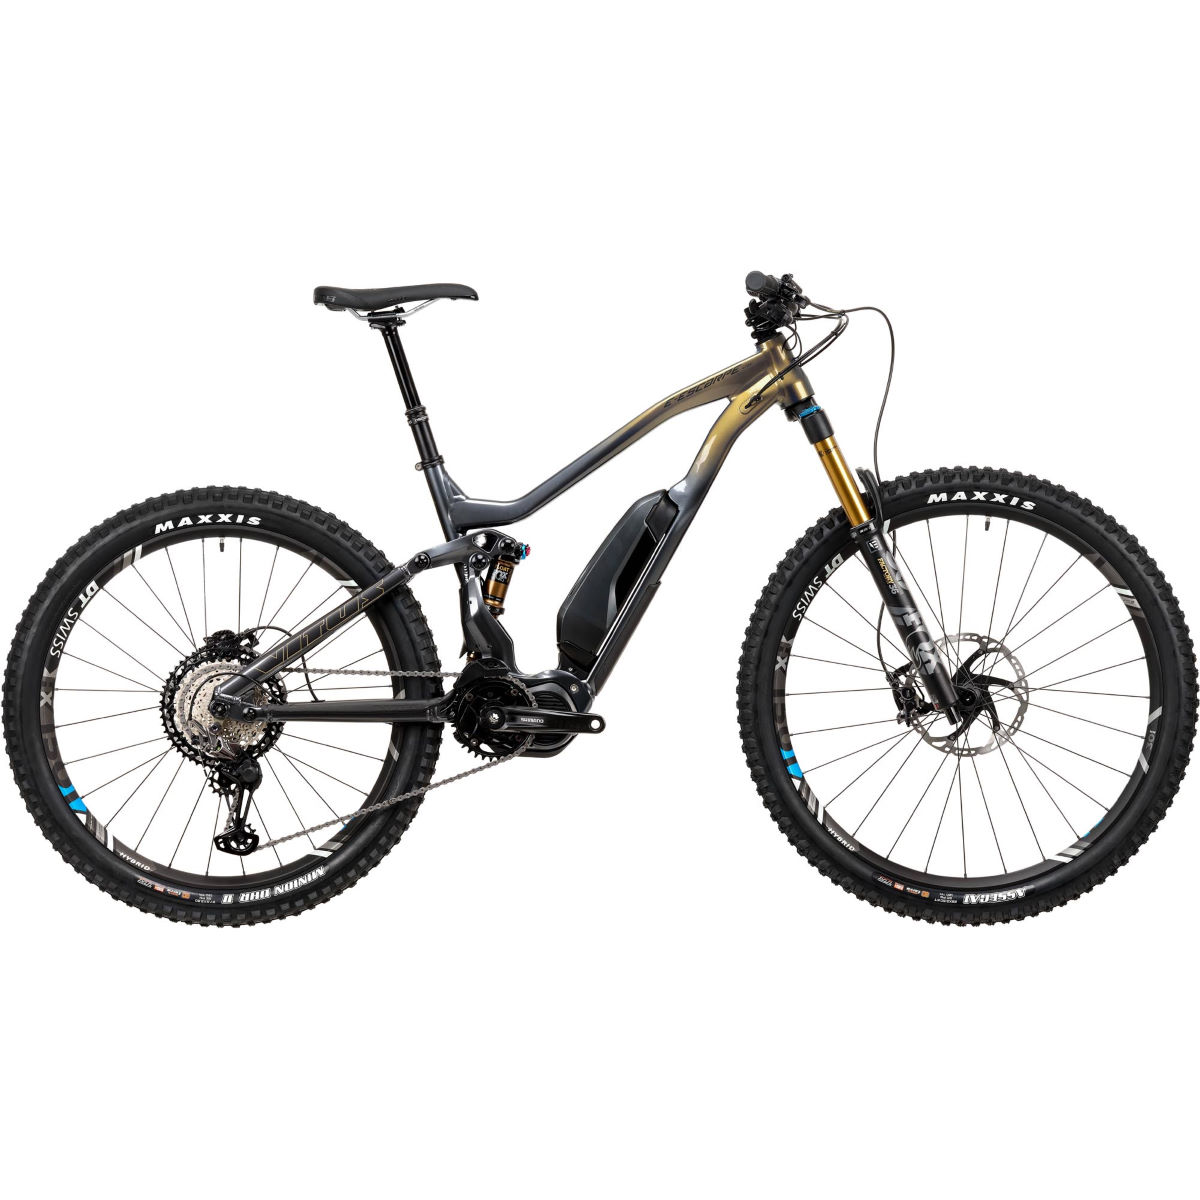 Vitus Vitus E-Escarpe VRX E-Bike (XTR/XT 1x12 - 2020)   Electric Mountain Bikes